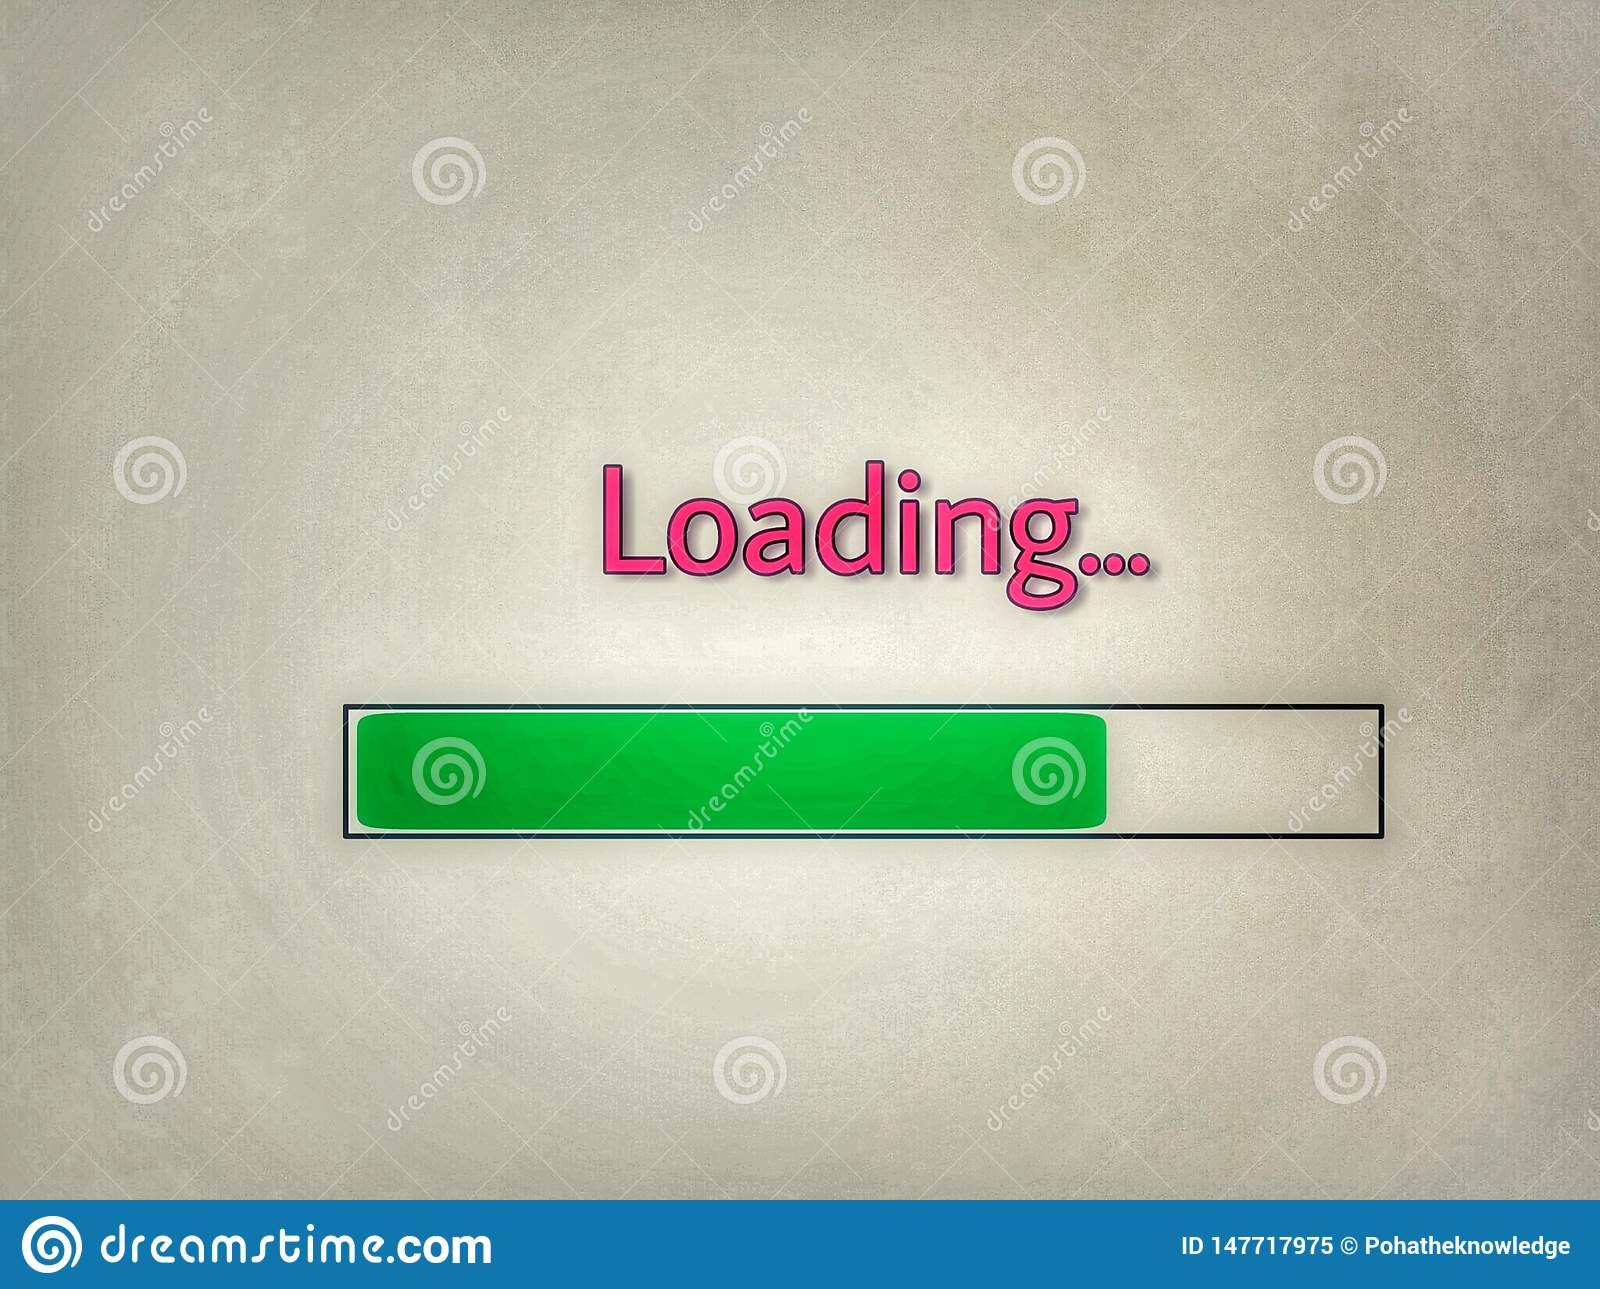 Loading icon with green line